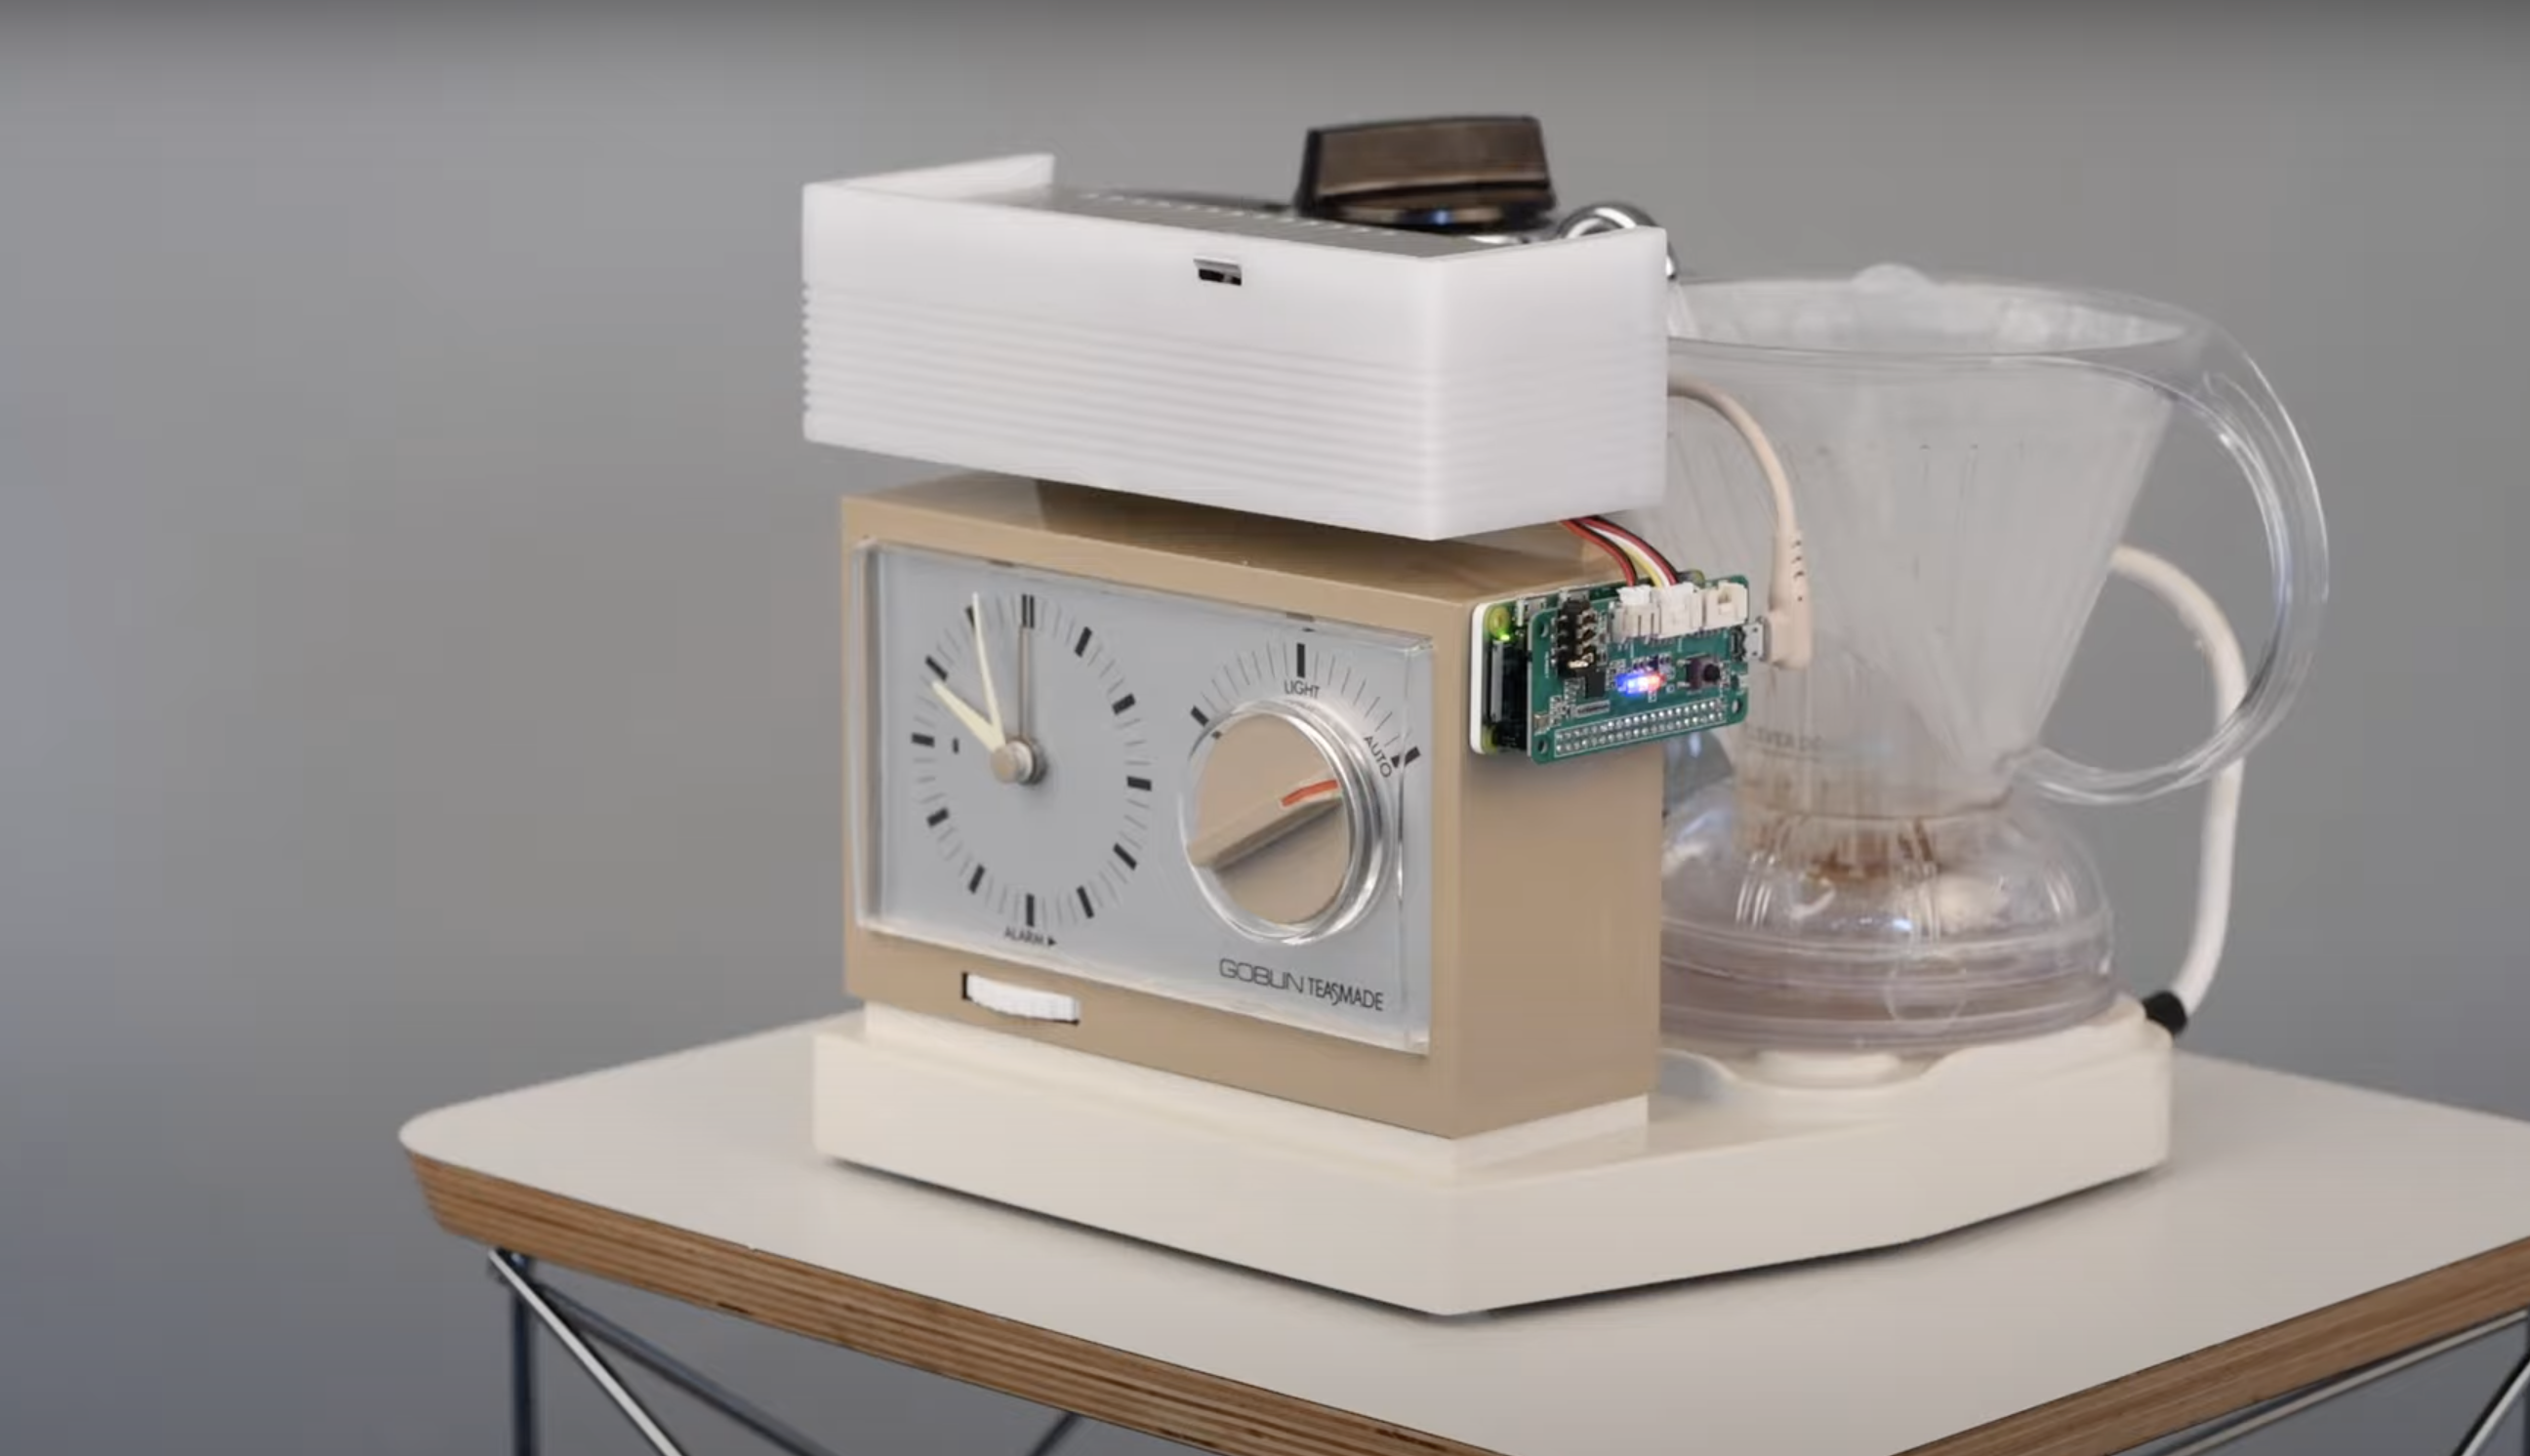 teasmade with raspberry pi attached